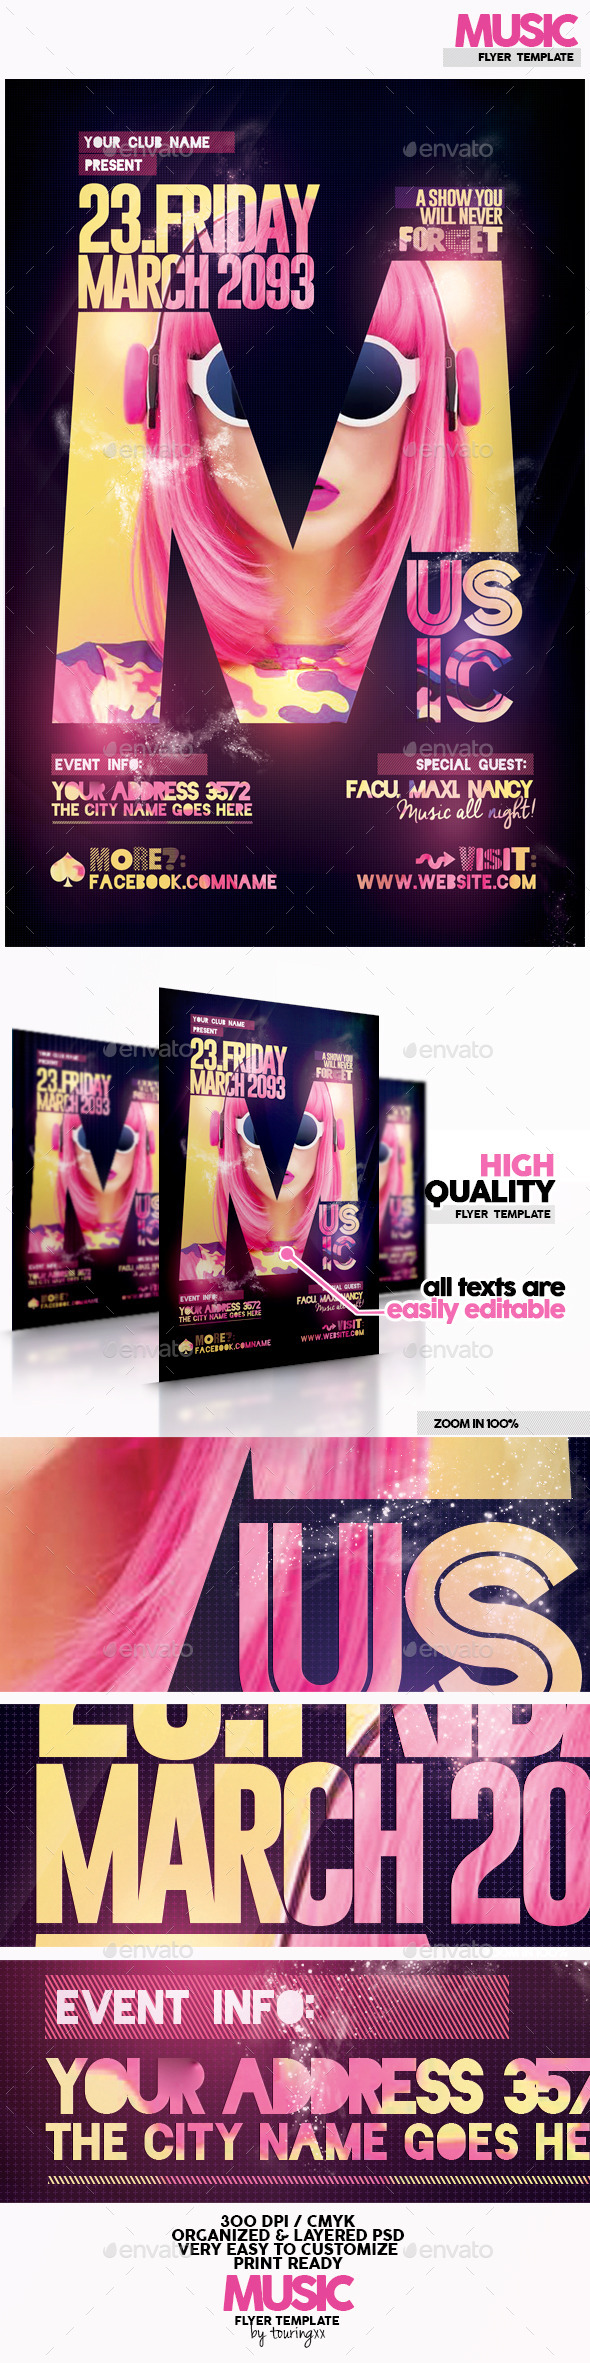 Music Flyer Template - Flyers Print Templates